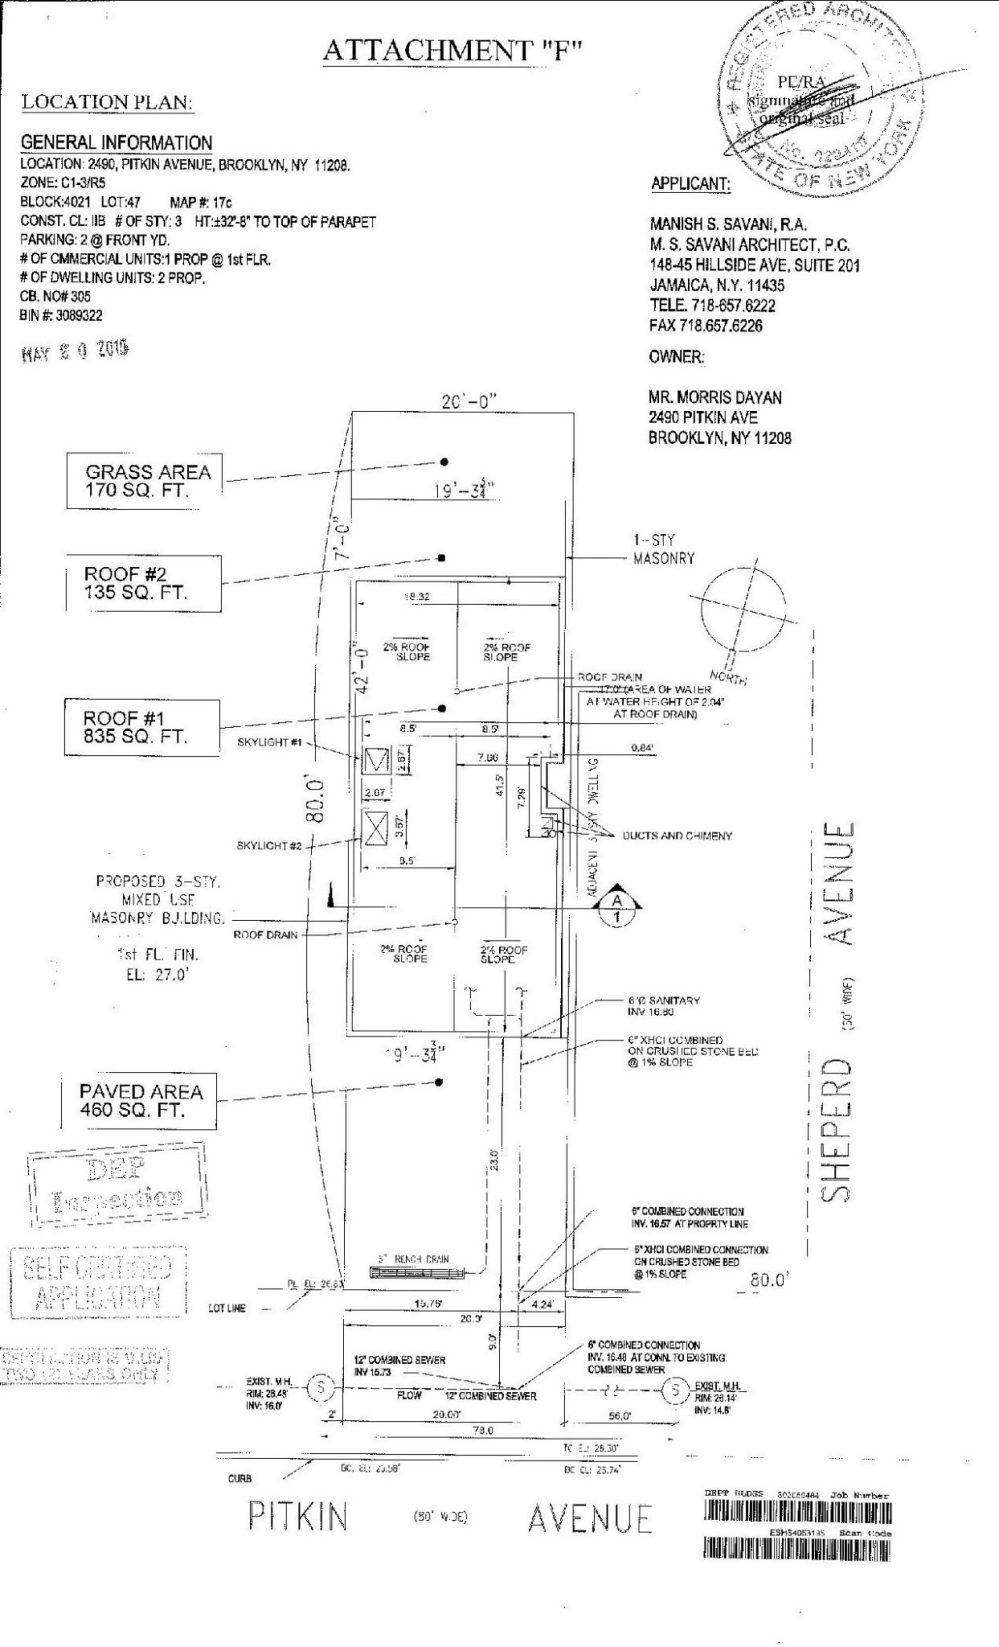 medium resolution of 2490 pitkin ave sd1 2 attachment